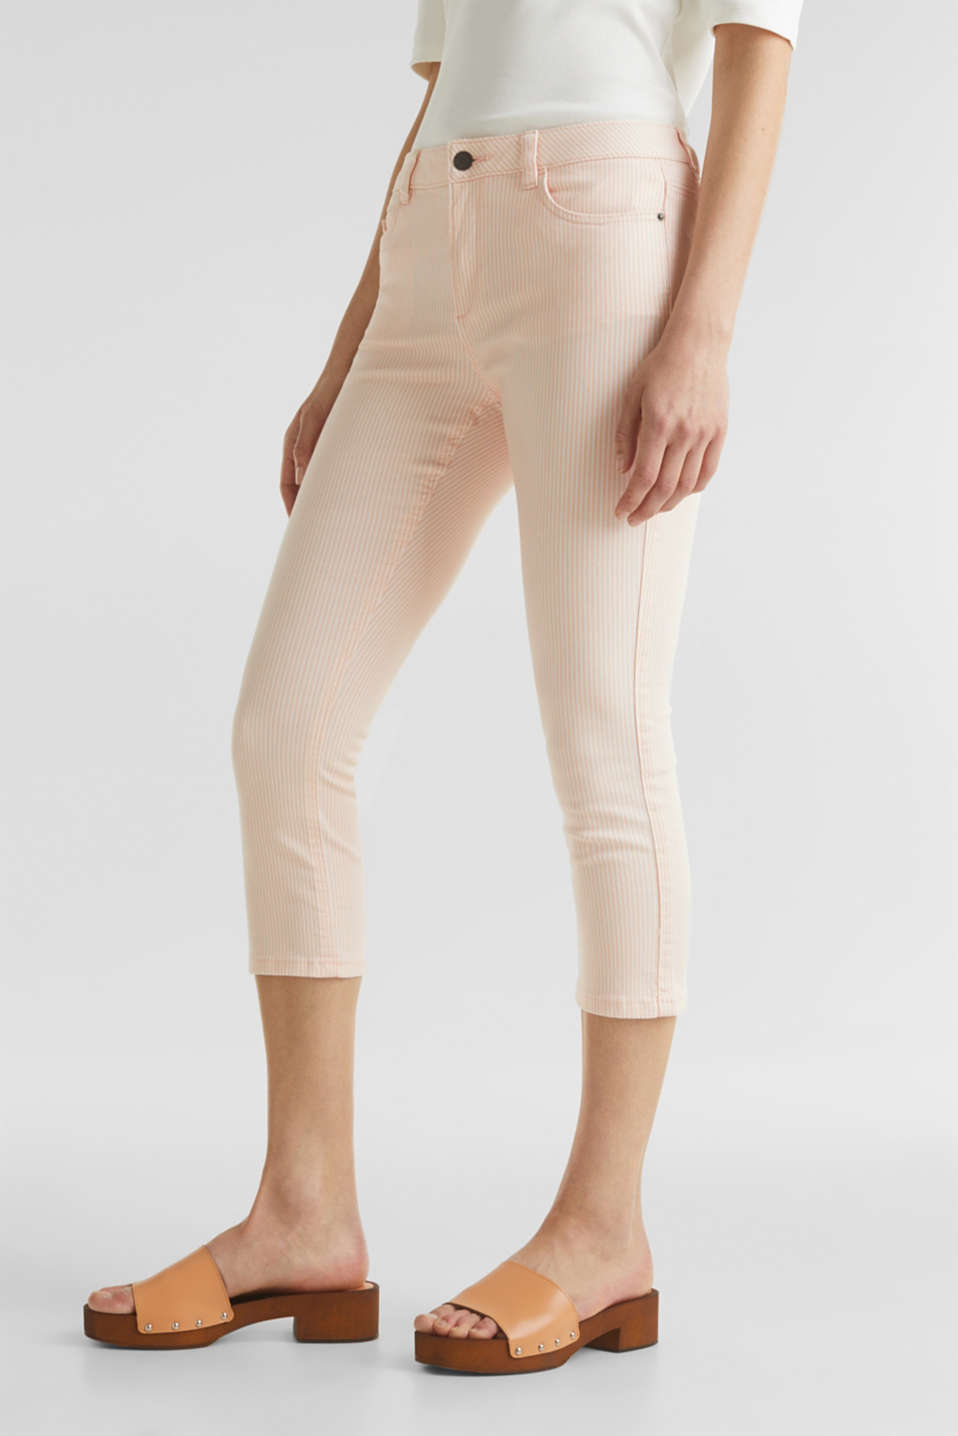 REPREVE striped Trousers, recycled, PEACH, detail image number 7